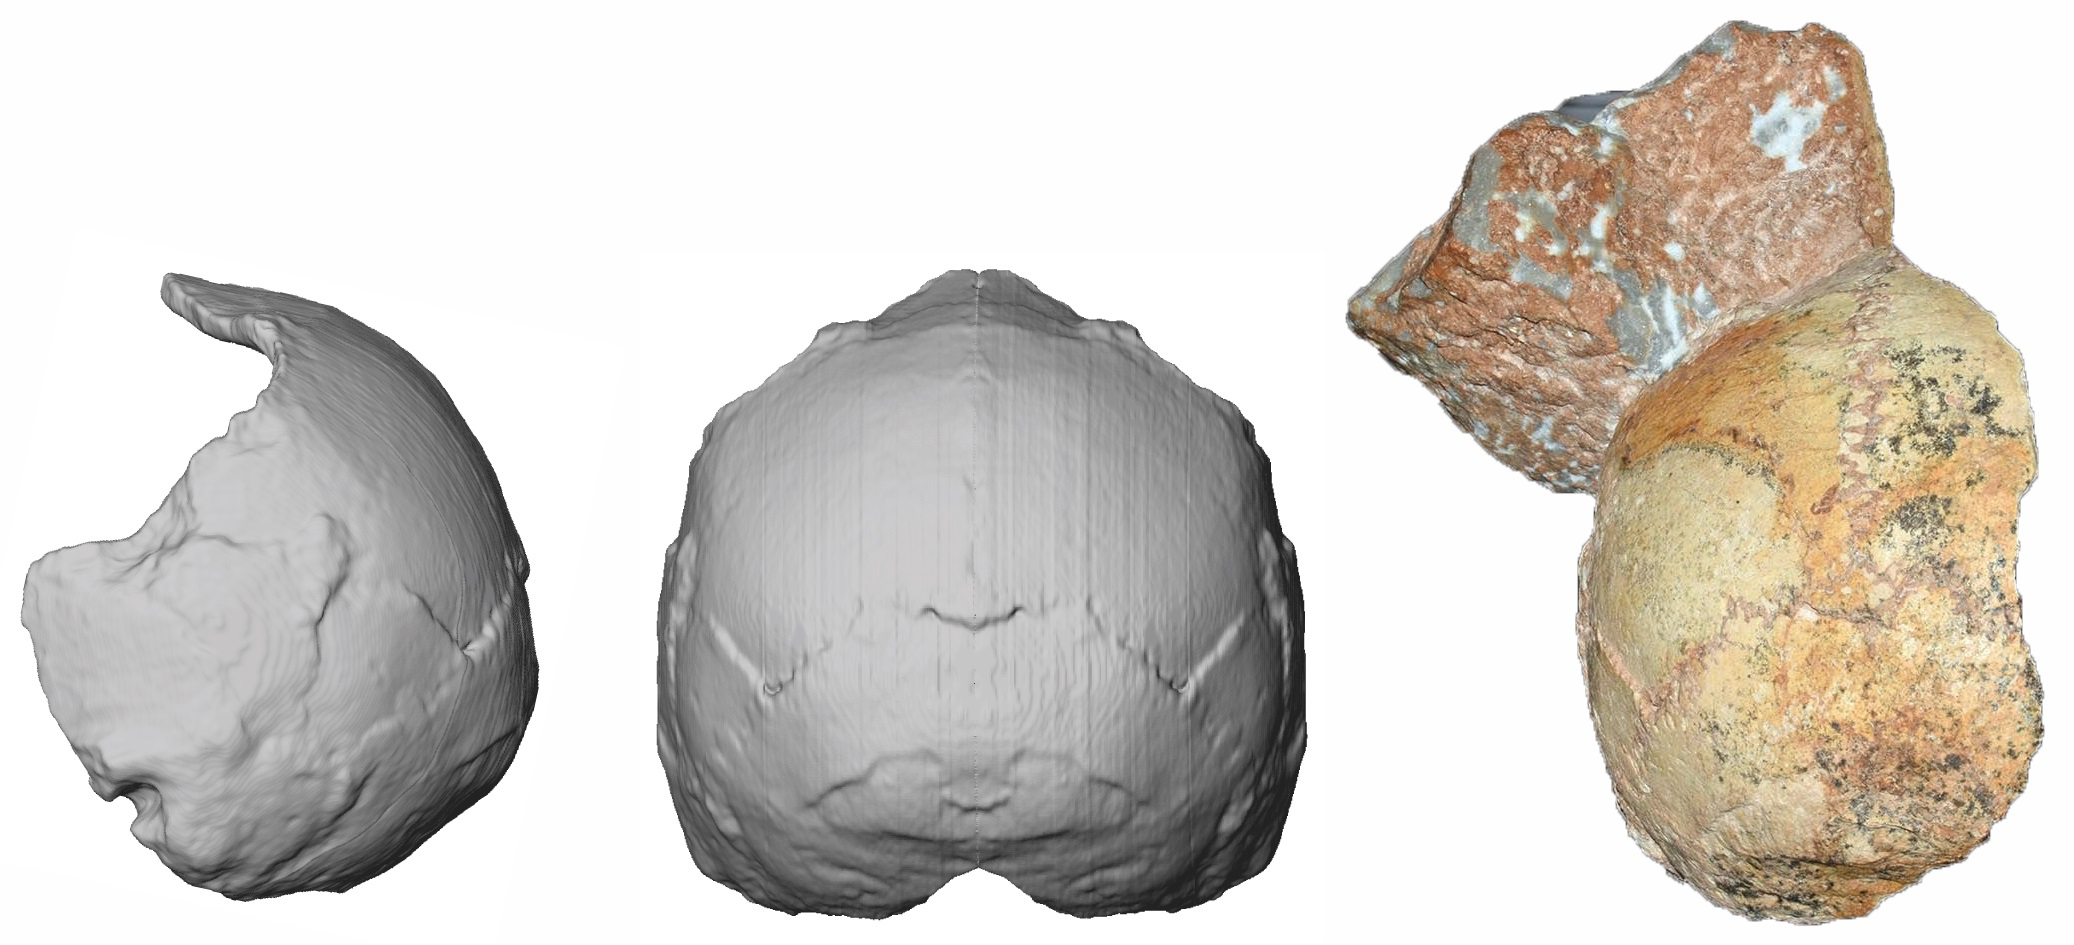 Scientists Find the Oldest Human Skull Outside of Africa